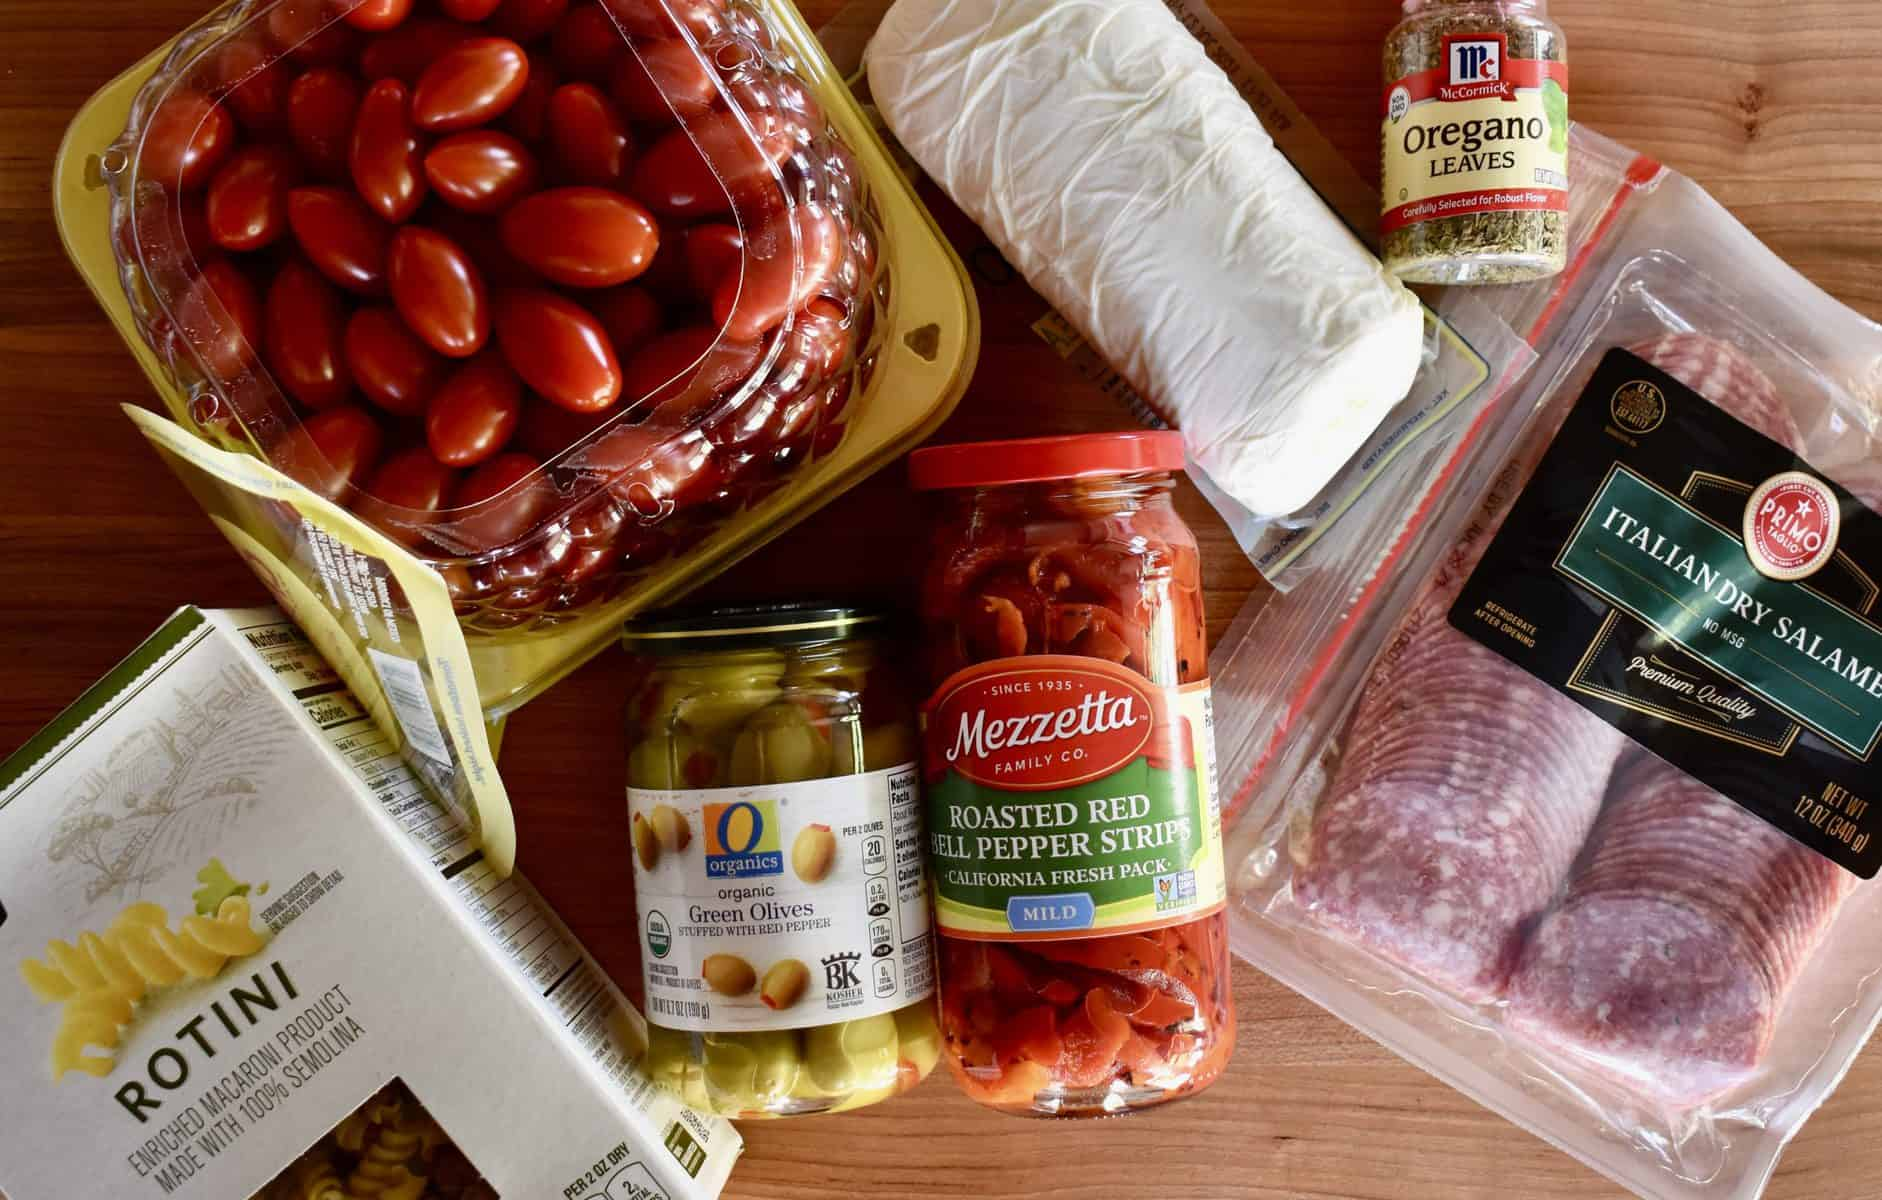 Overhead photo of wood cutting board with rotini, salami, tomatoes, mozzarella, green olives, roasted red peppers, and oregano.